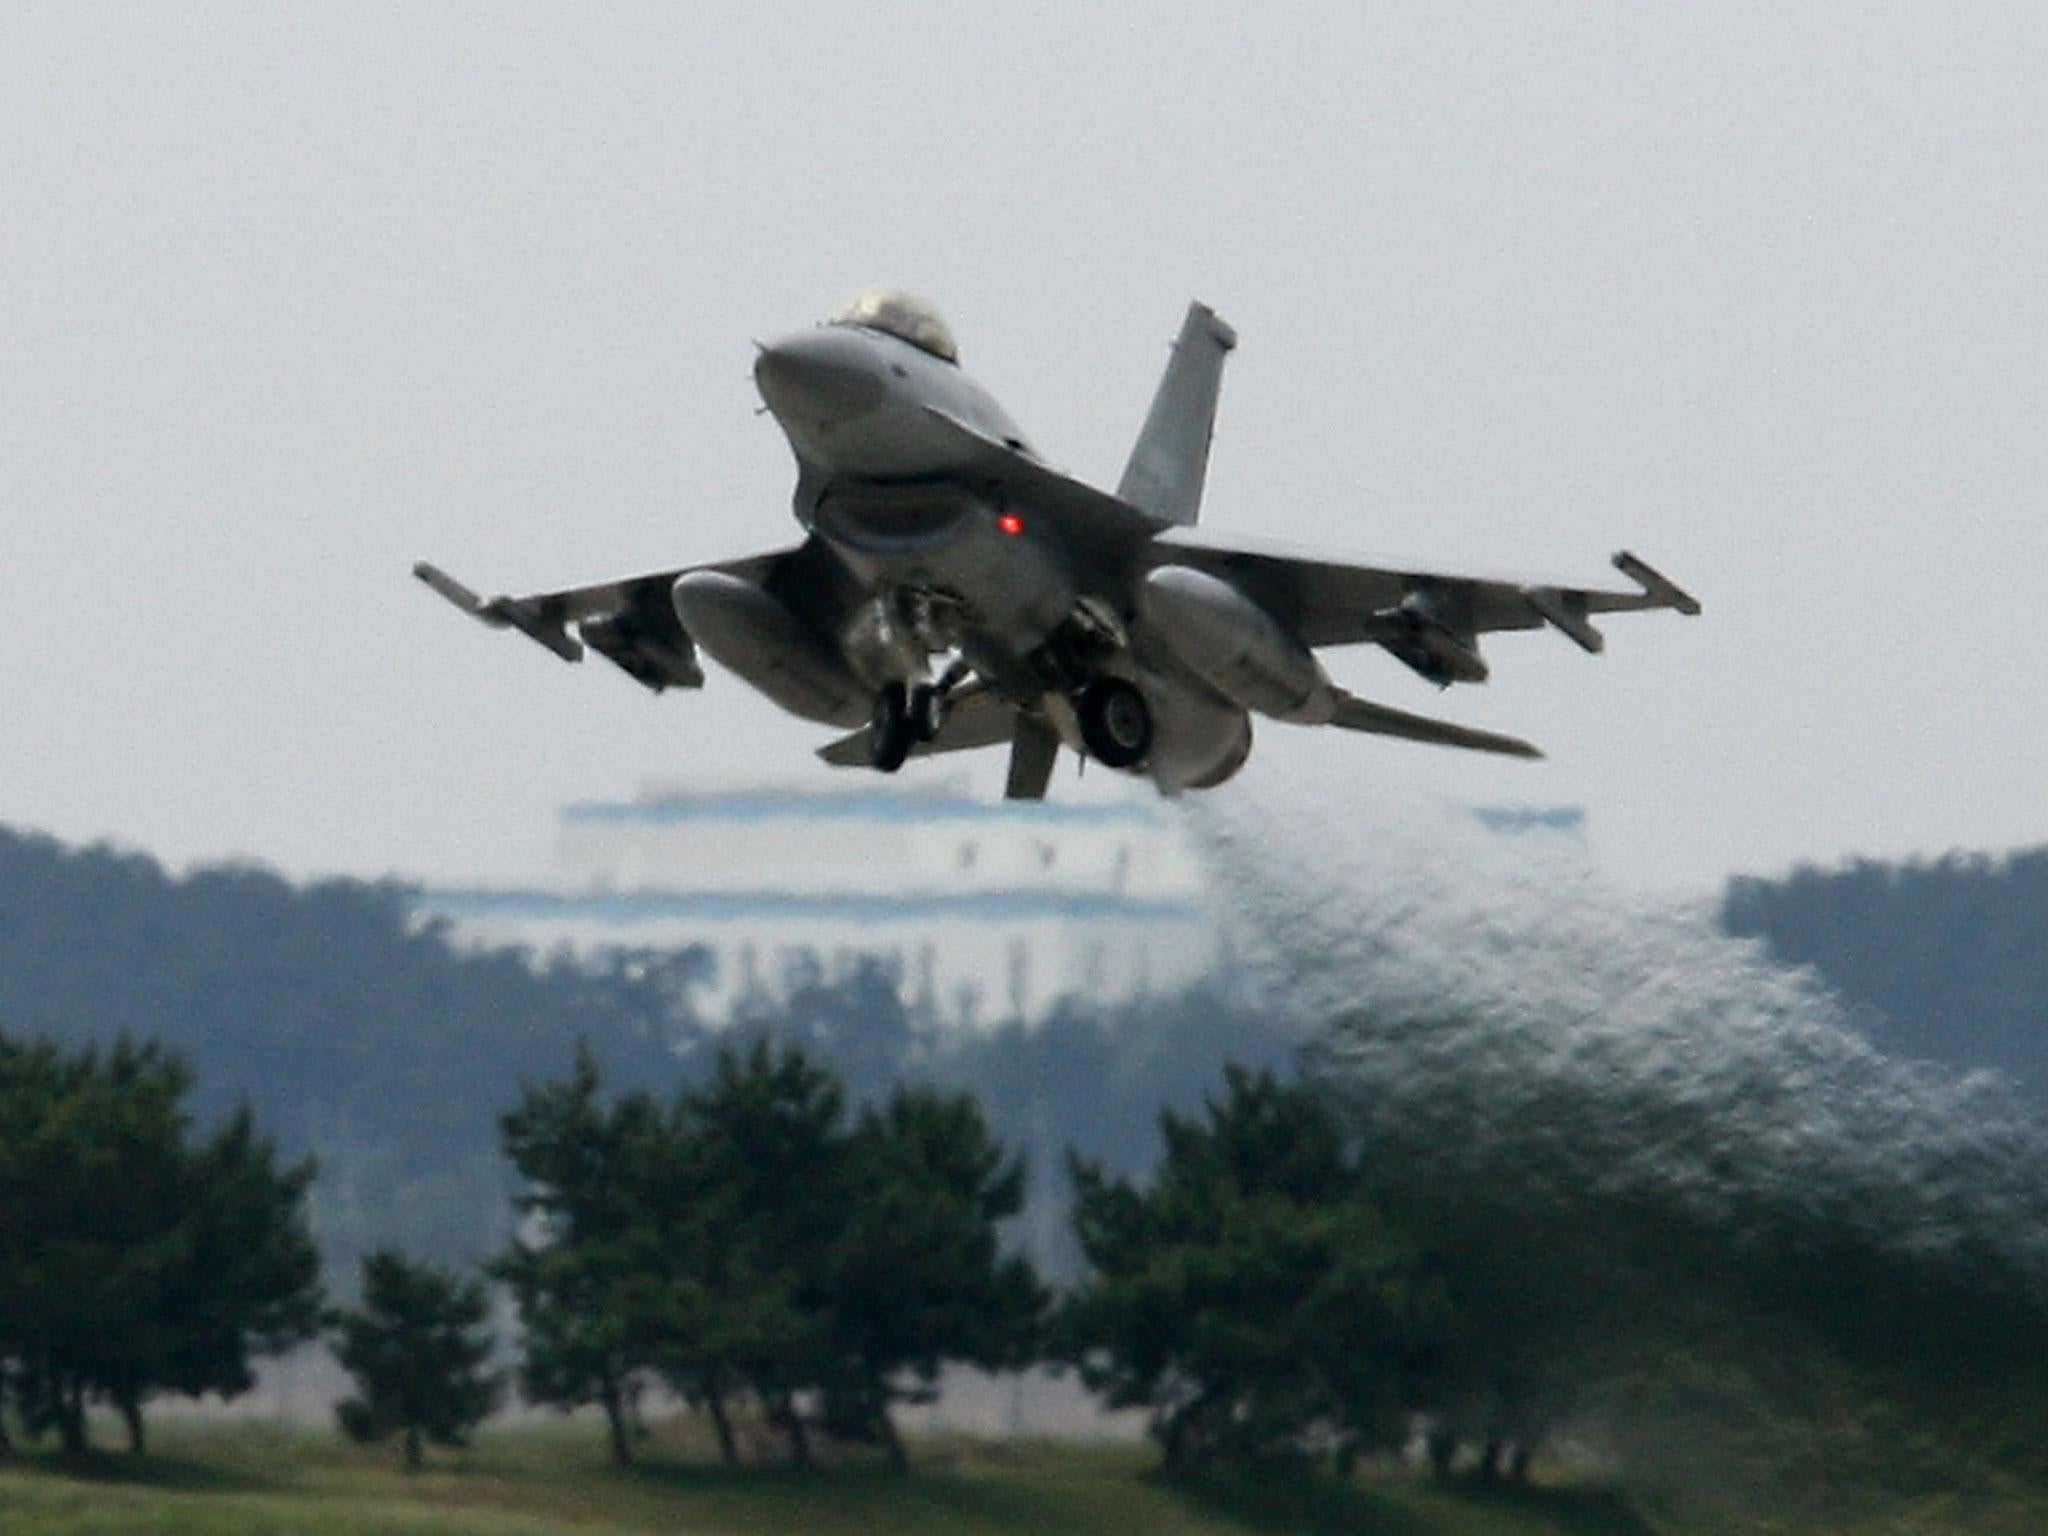 South Korea scrambles fighter jets after China military planes enter country's airspace